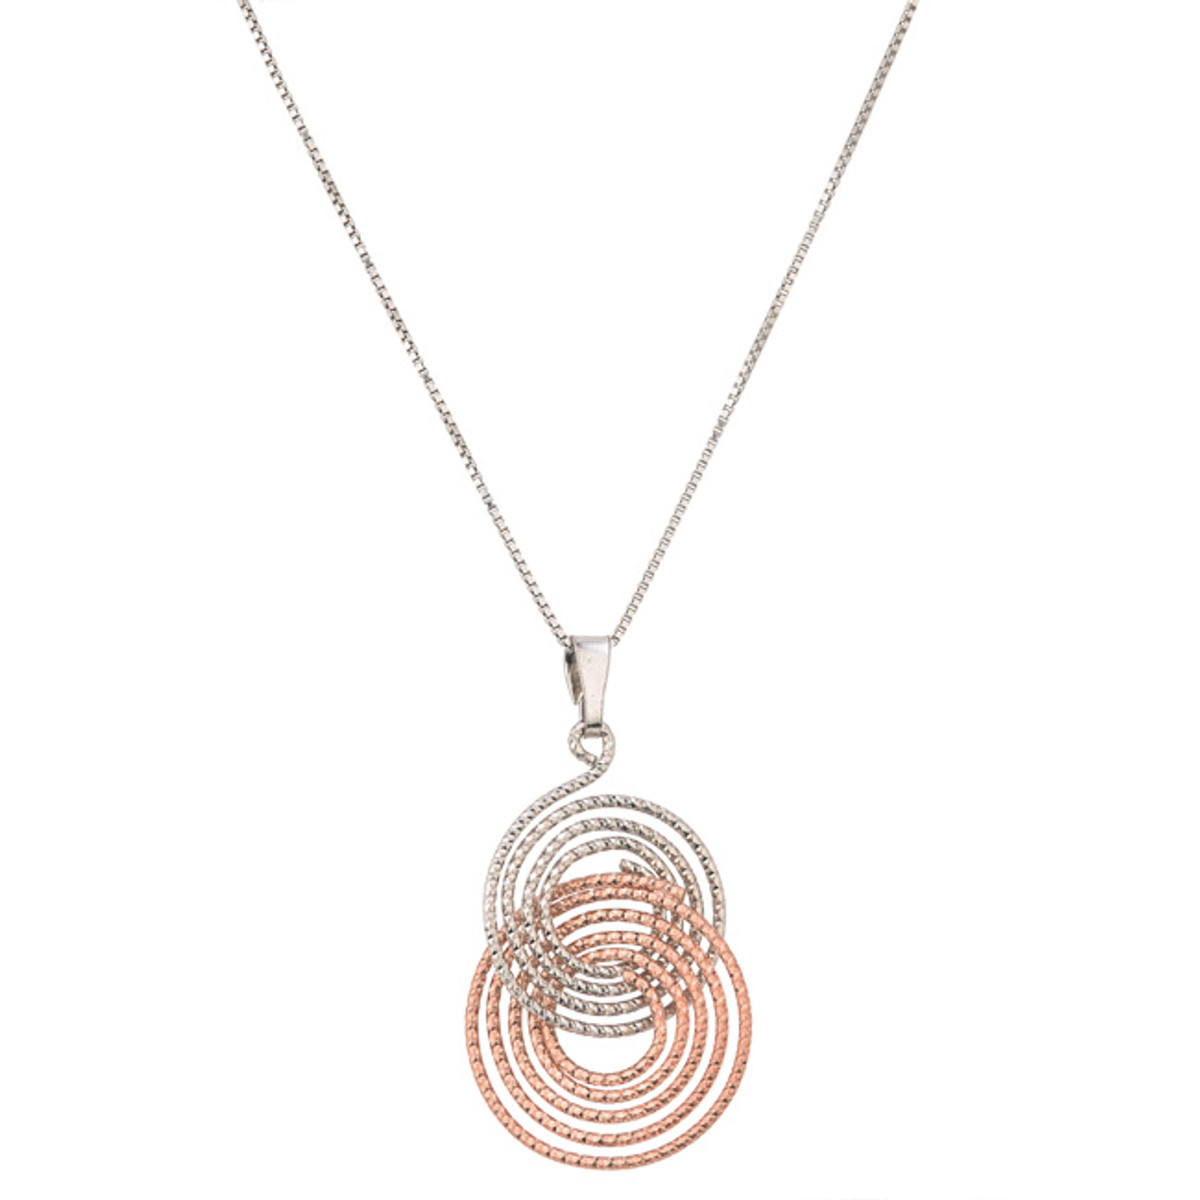 Sterling Silver Rose Gold Elsa, Frederic Duclos Necklace